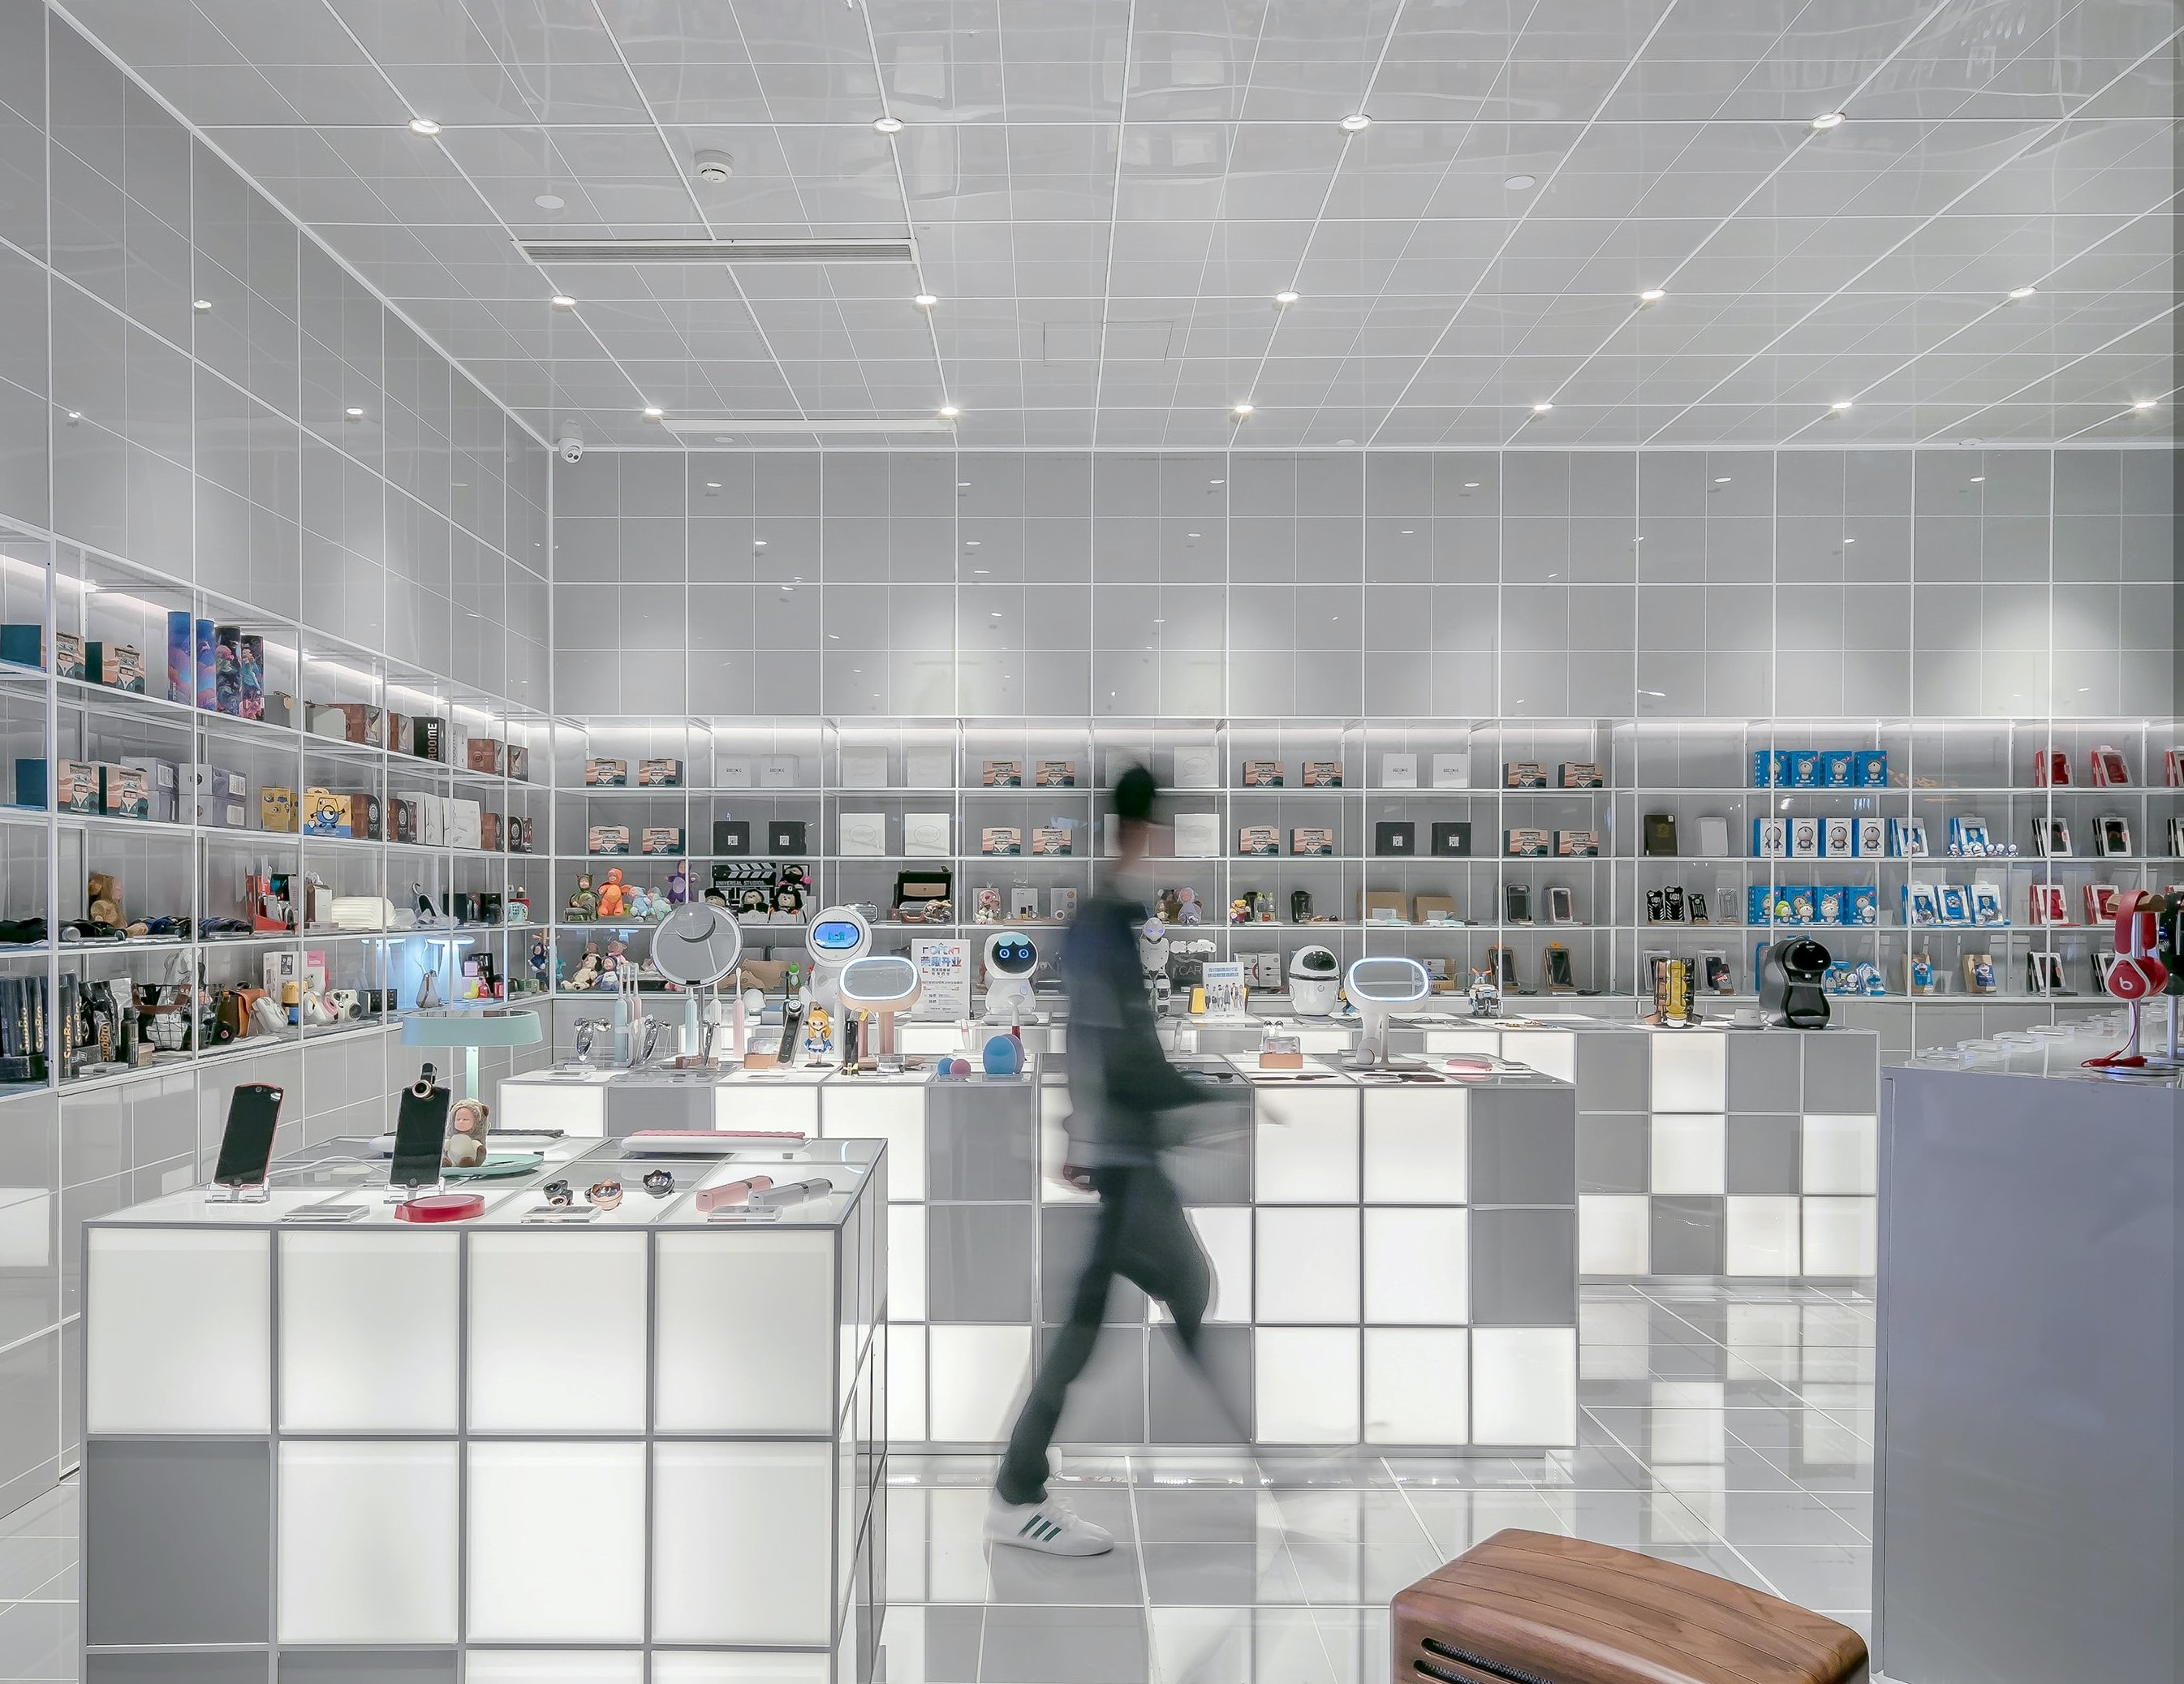 indoor gps system in a store